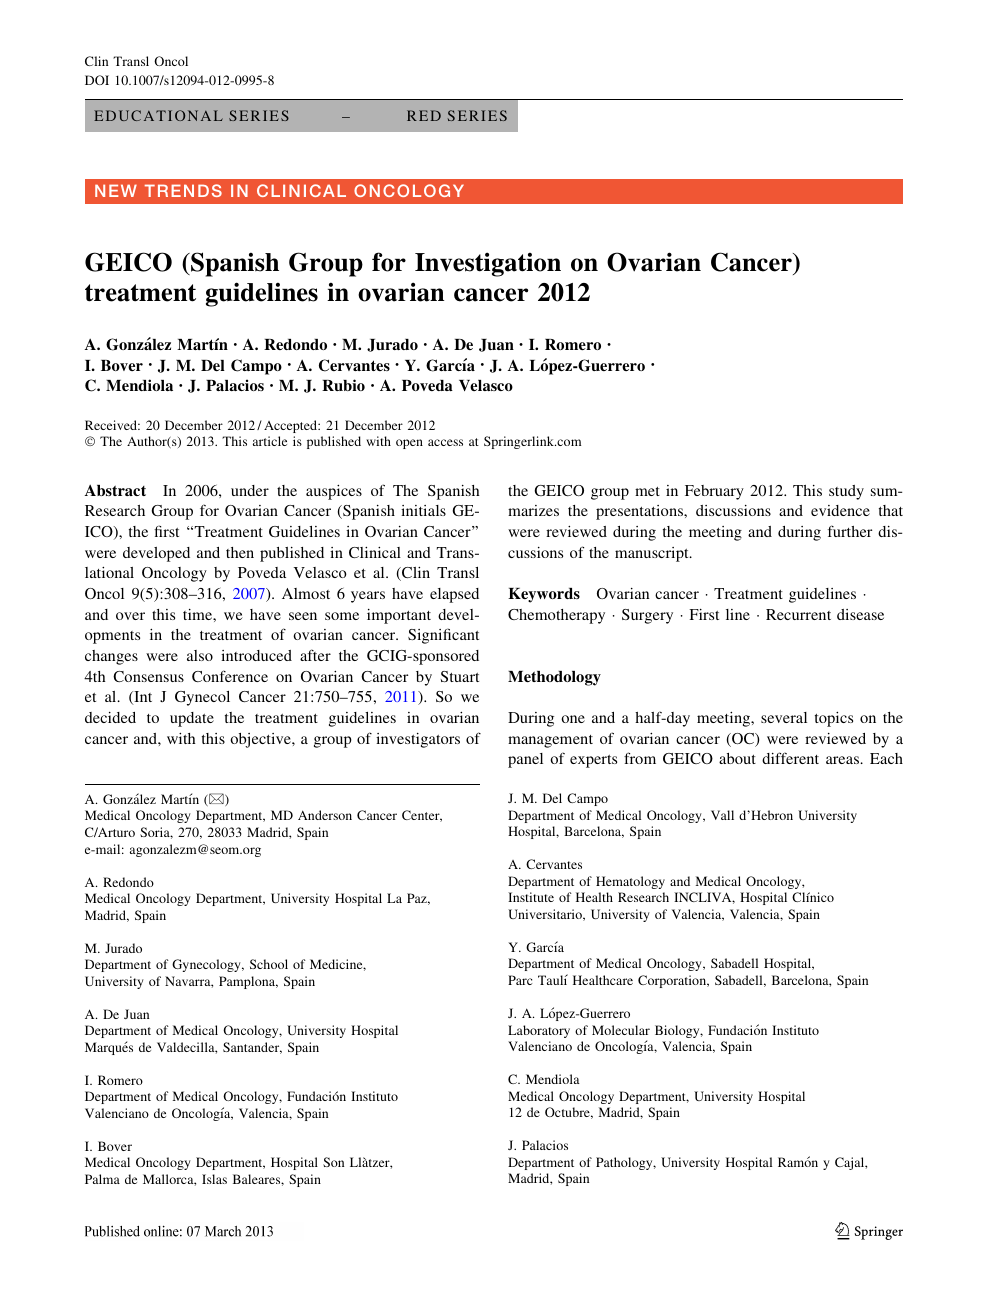 Geico Spanish Group For Investigation On Ovarian Cancer Treatment Guidelines In Ovarian Cancer 2012 Topic Of Research Paper In Clinical Medicine Download Scholarly Article Pdf And Read For Free On Cyberleninka